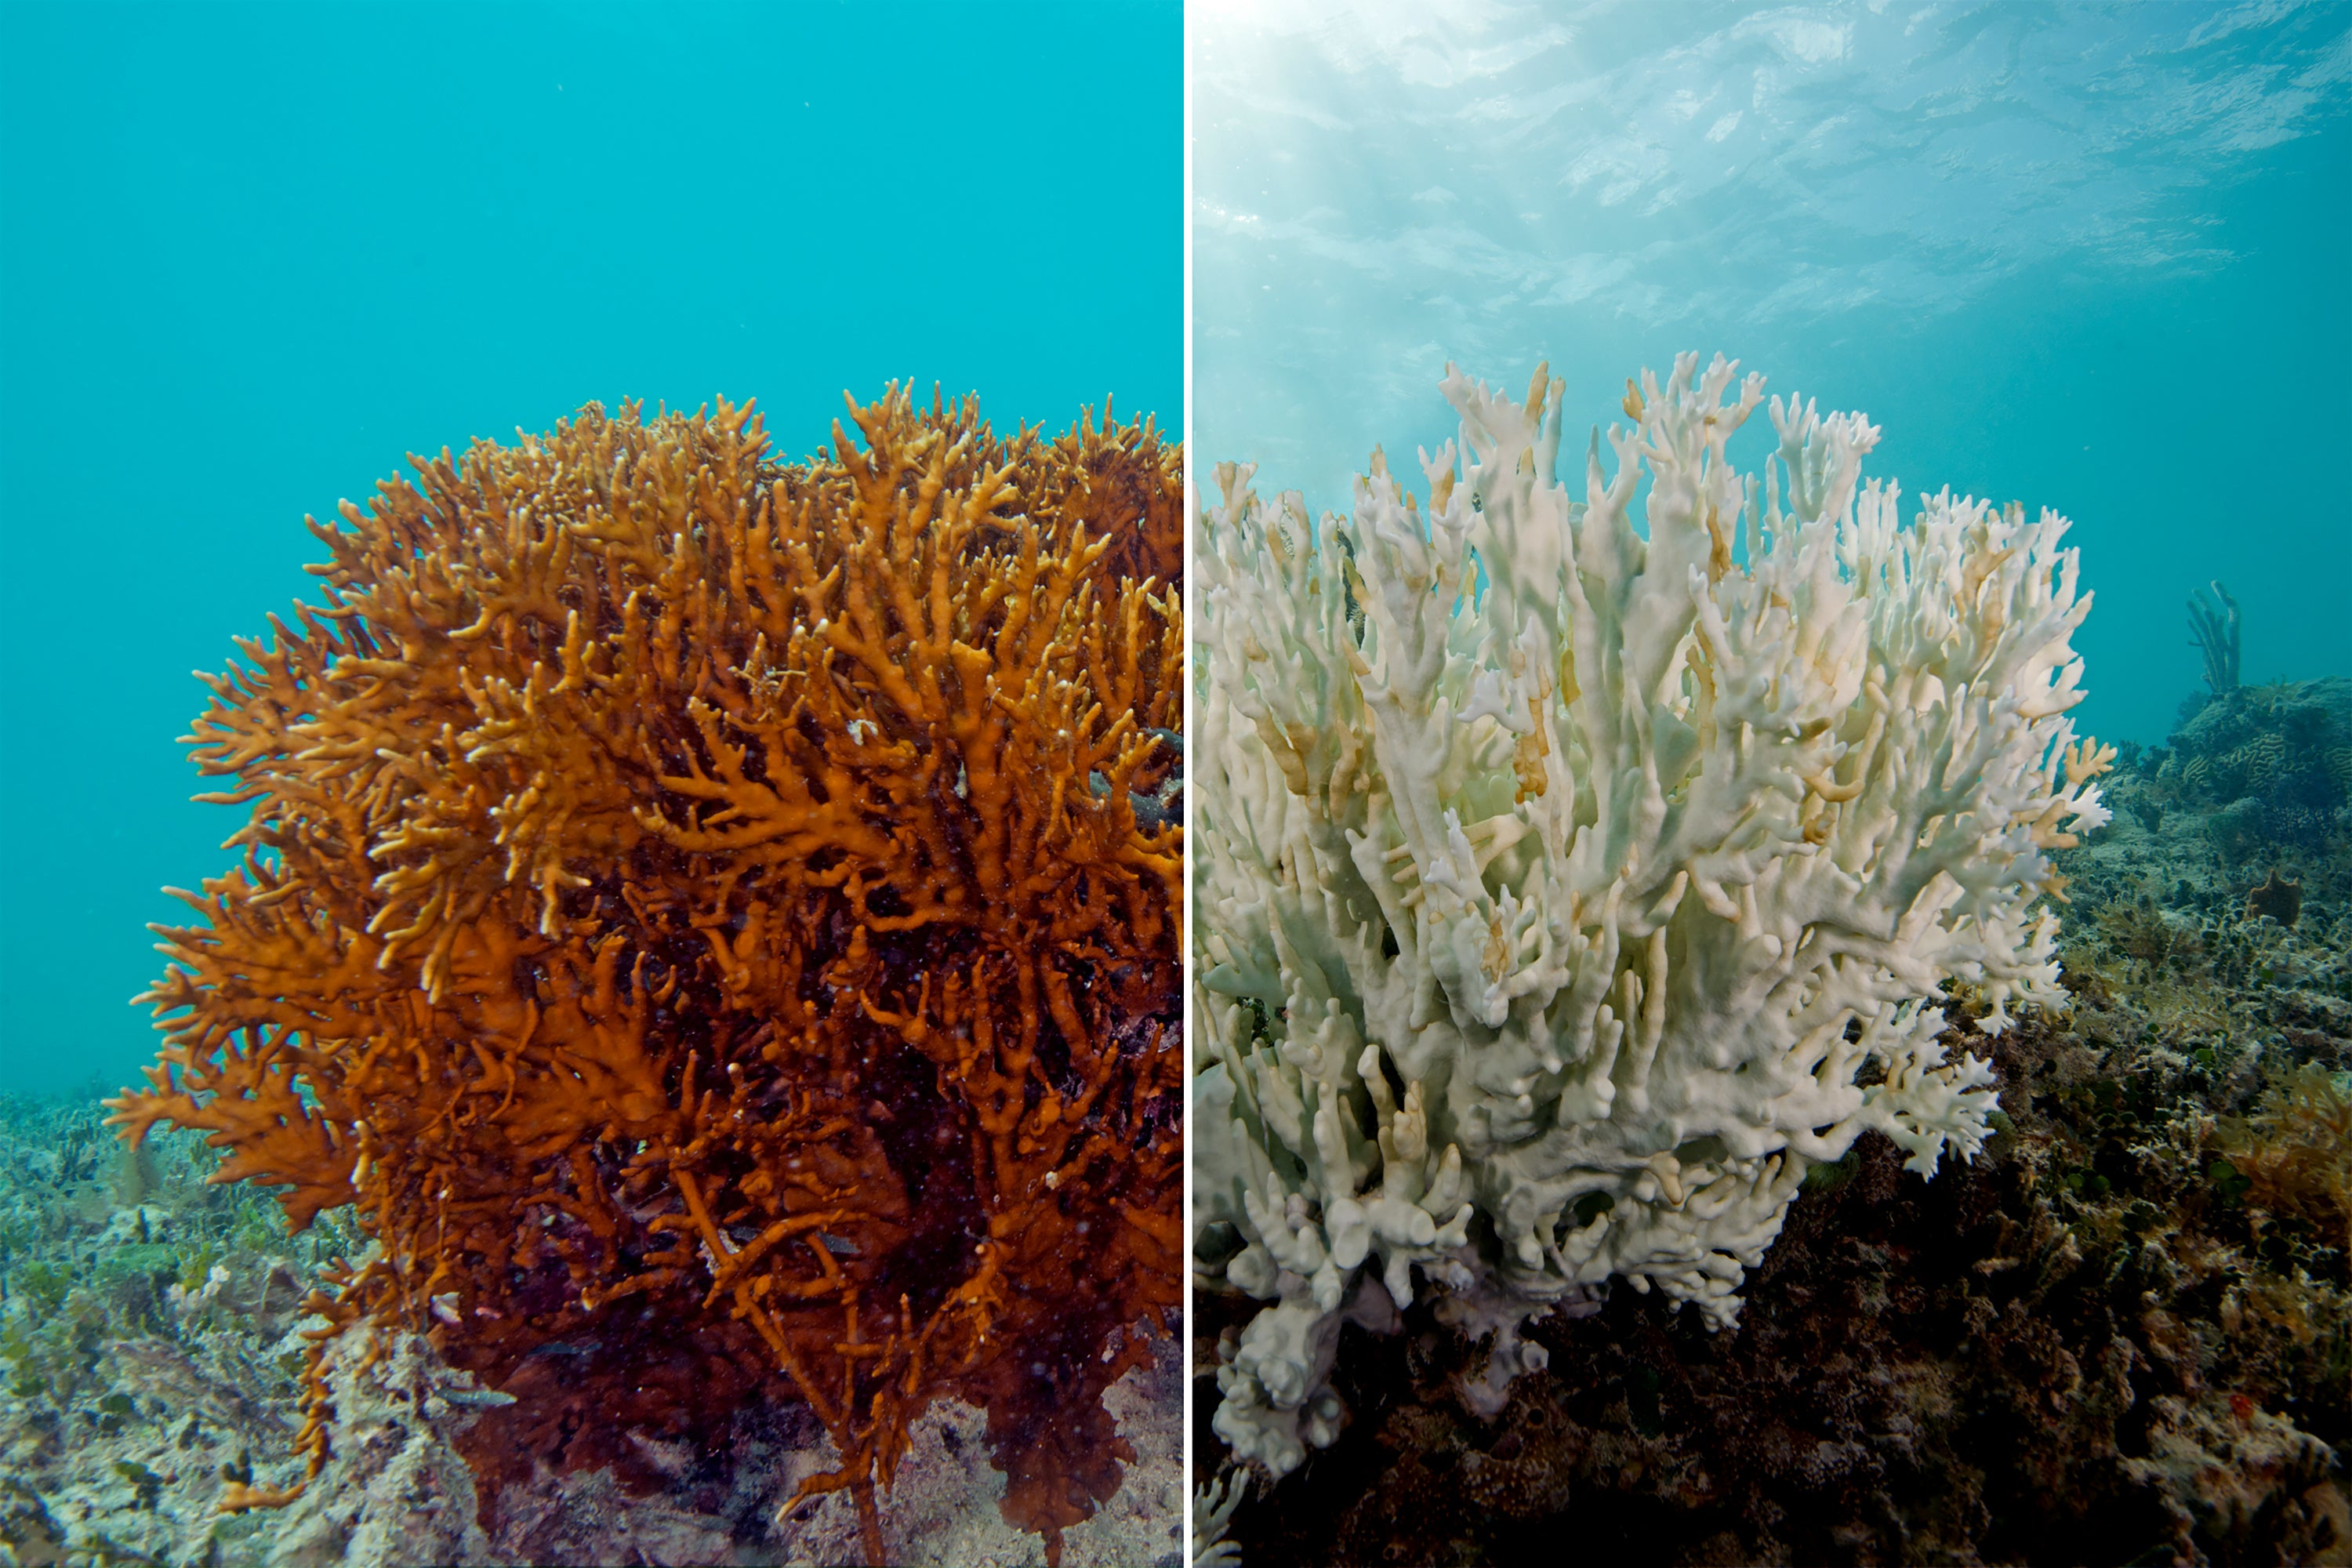 This is What a Mass Die-off of Earth's Coral Reefs Looks Like